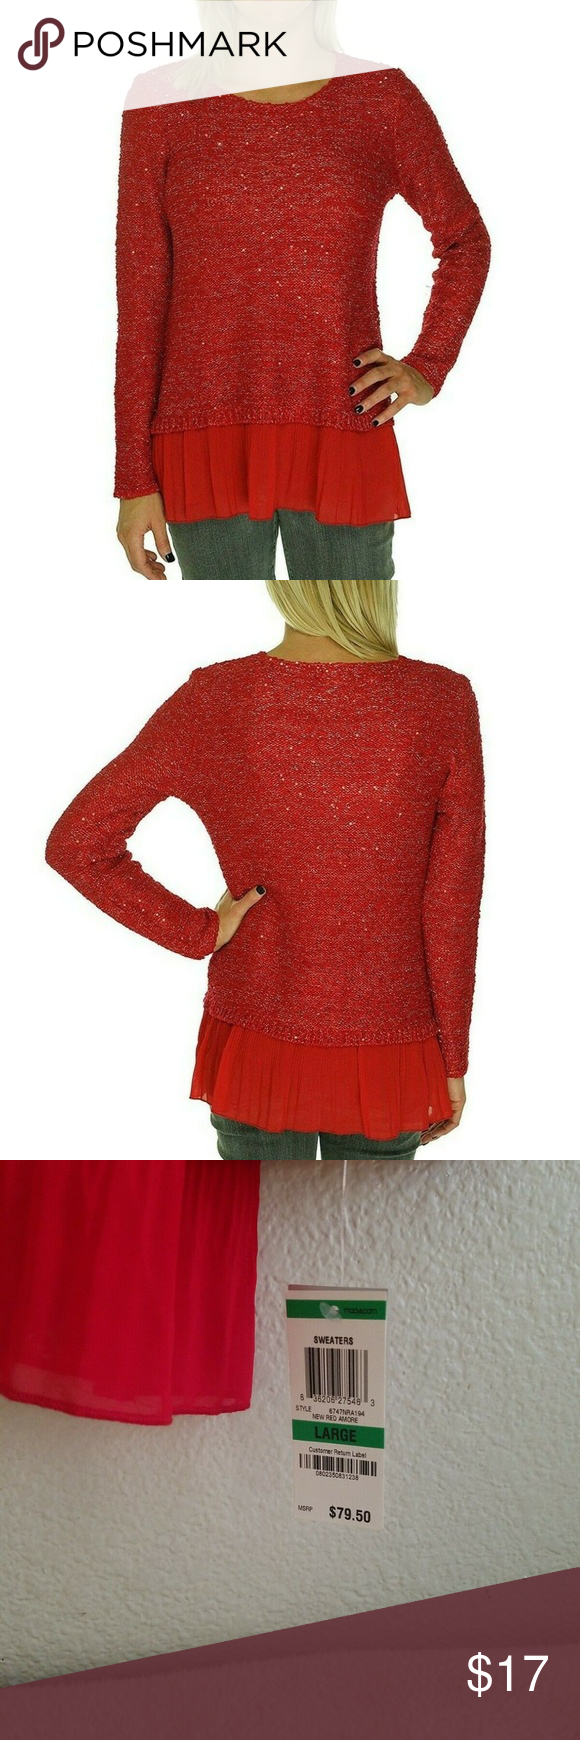 """Alfani Red Sequin Chiffon Hem Holiday Knit Sweater Alfani New Red Amore Sweater Size Large 12-14 Approximate measurements- Armpit to armpit 19.5"""" Length 30"""" Sleeves 29"""" 42% polyester, 41% acrylic, 16% nylon, 1% metallic Trim- 100% polyester Hand wash This sweater has a customer return tag on it and all of the original tags.  Thank you for looking! Make an offer! Alfani Sweaters Crew & Scoop Necks"""